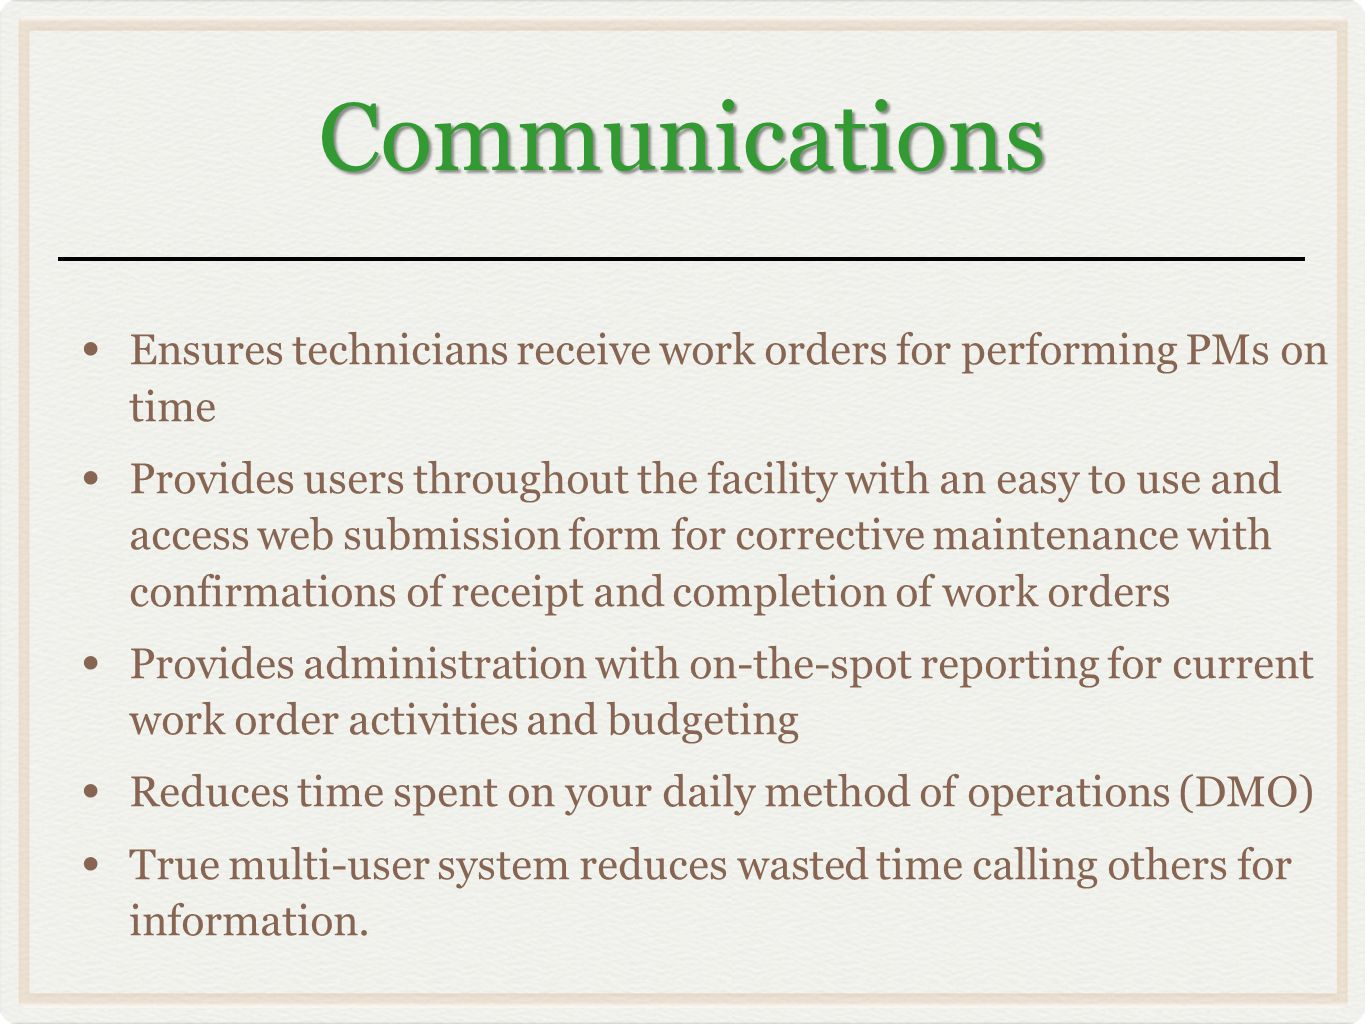 Communications Ensures technicians receive work orders for performing PMs on time Provides users throughout the facility with an easy to use and access web submission form for corrective maintenance with confirmations of receipt and completion of work orders Provides administration with on-the-spot reporting for current work order activities and budgeting Reduces time spent on your daily method of operations (DMO) True multi-user system reduces wasted time calling others for information.